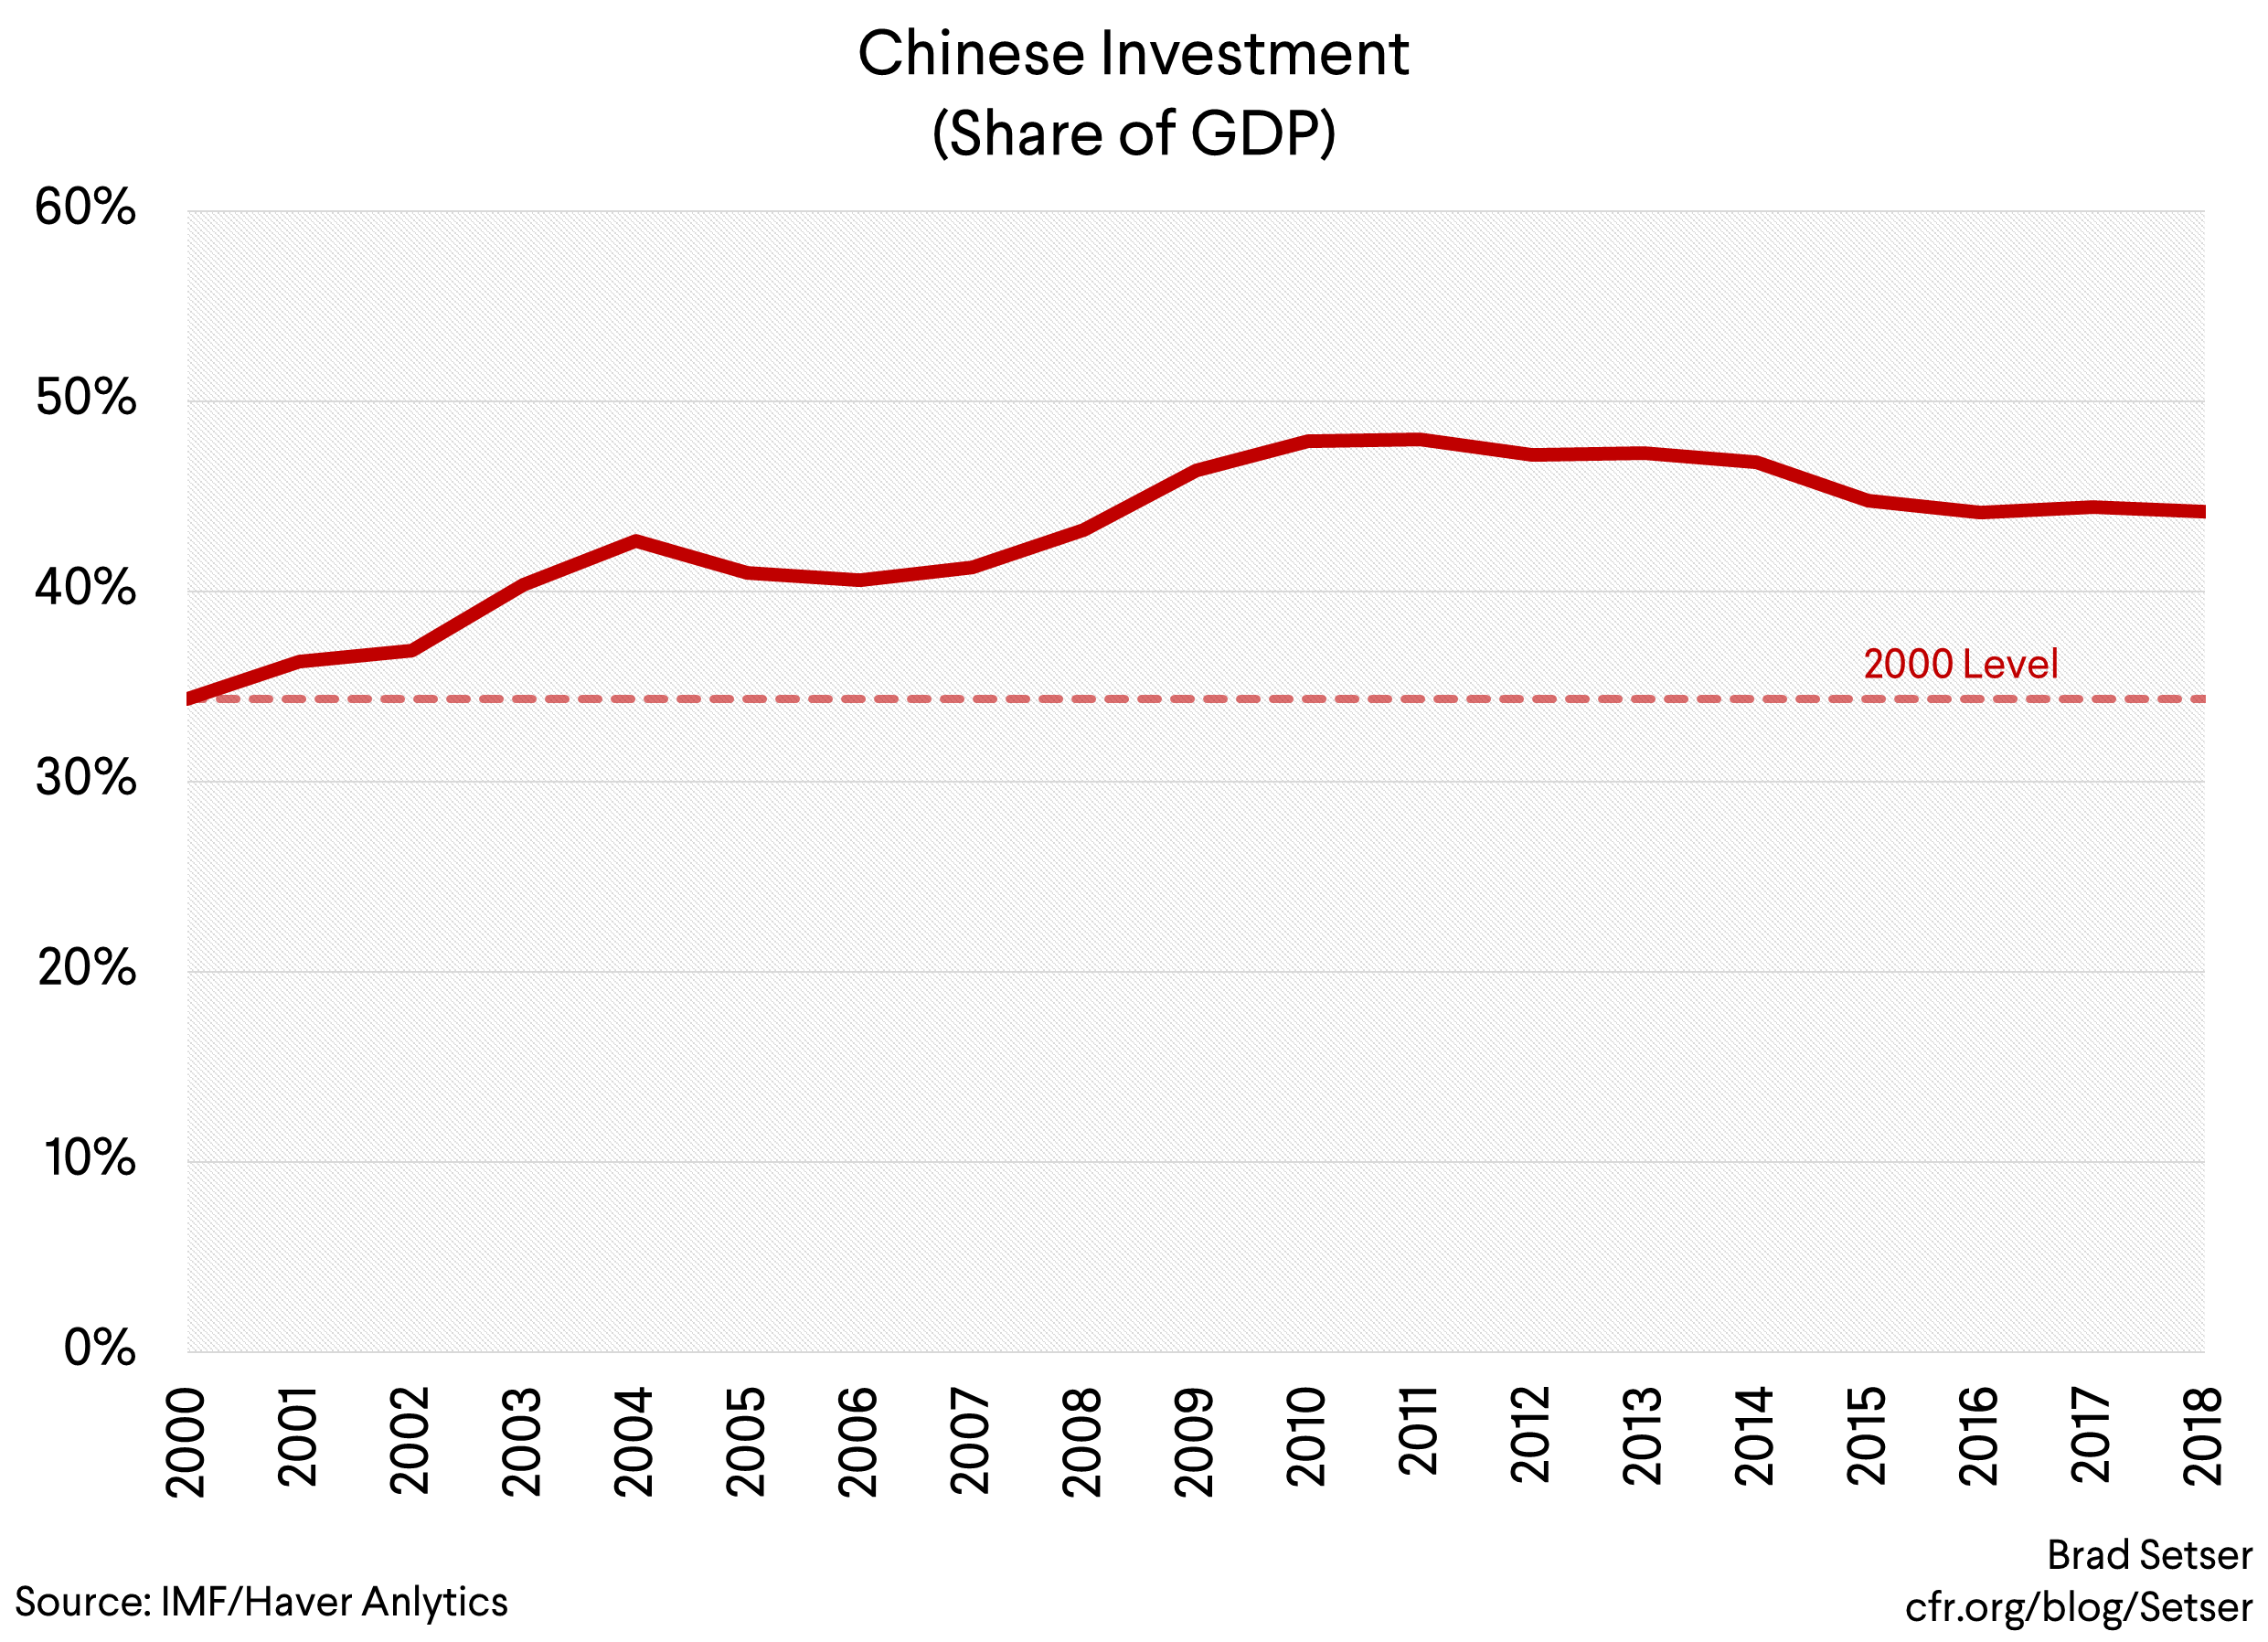 Why China's Incomplete Macroeconomic Adjustment Makes China 2025 a Bigger Risk